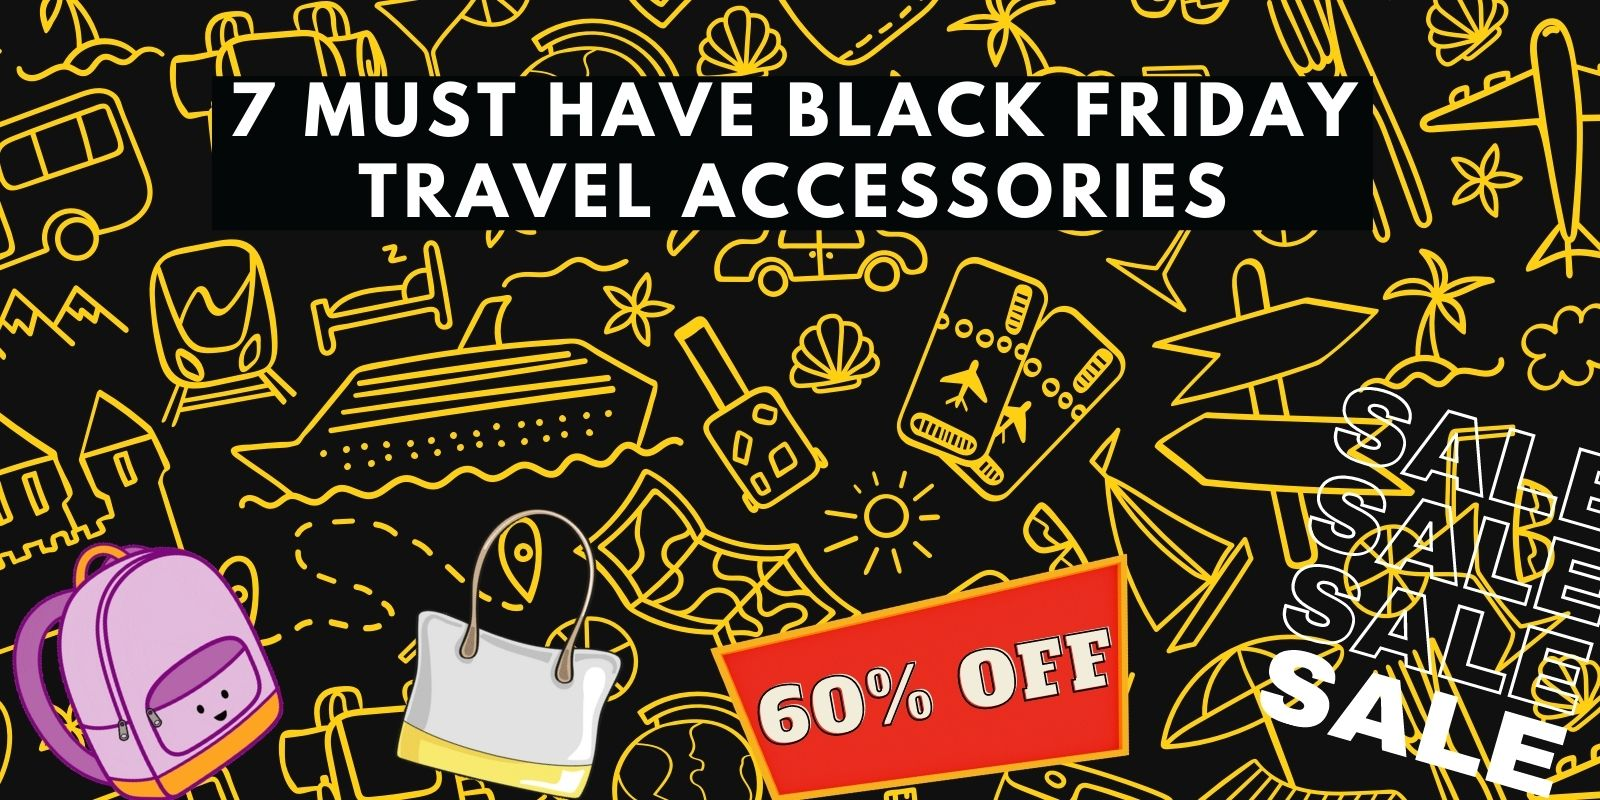 7 Must Have Black Friday Travel Accessories